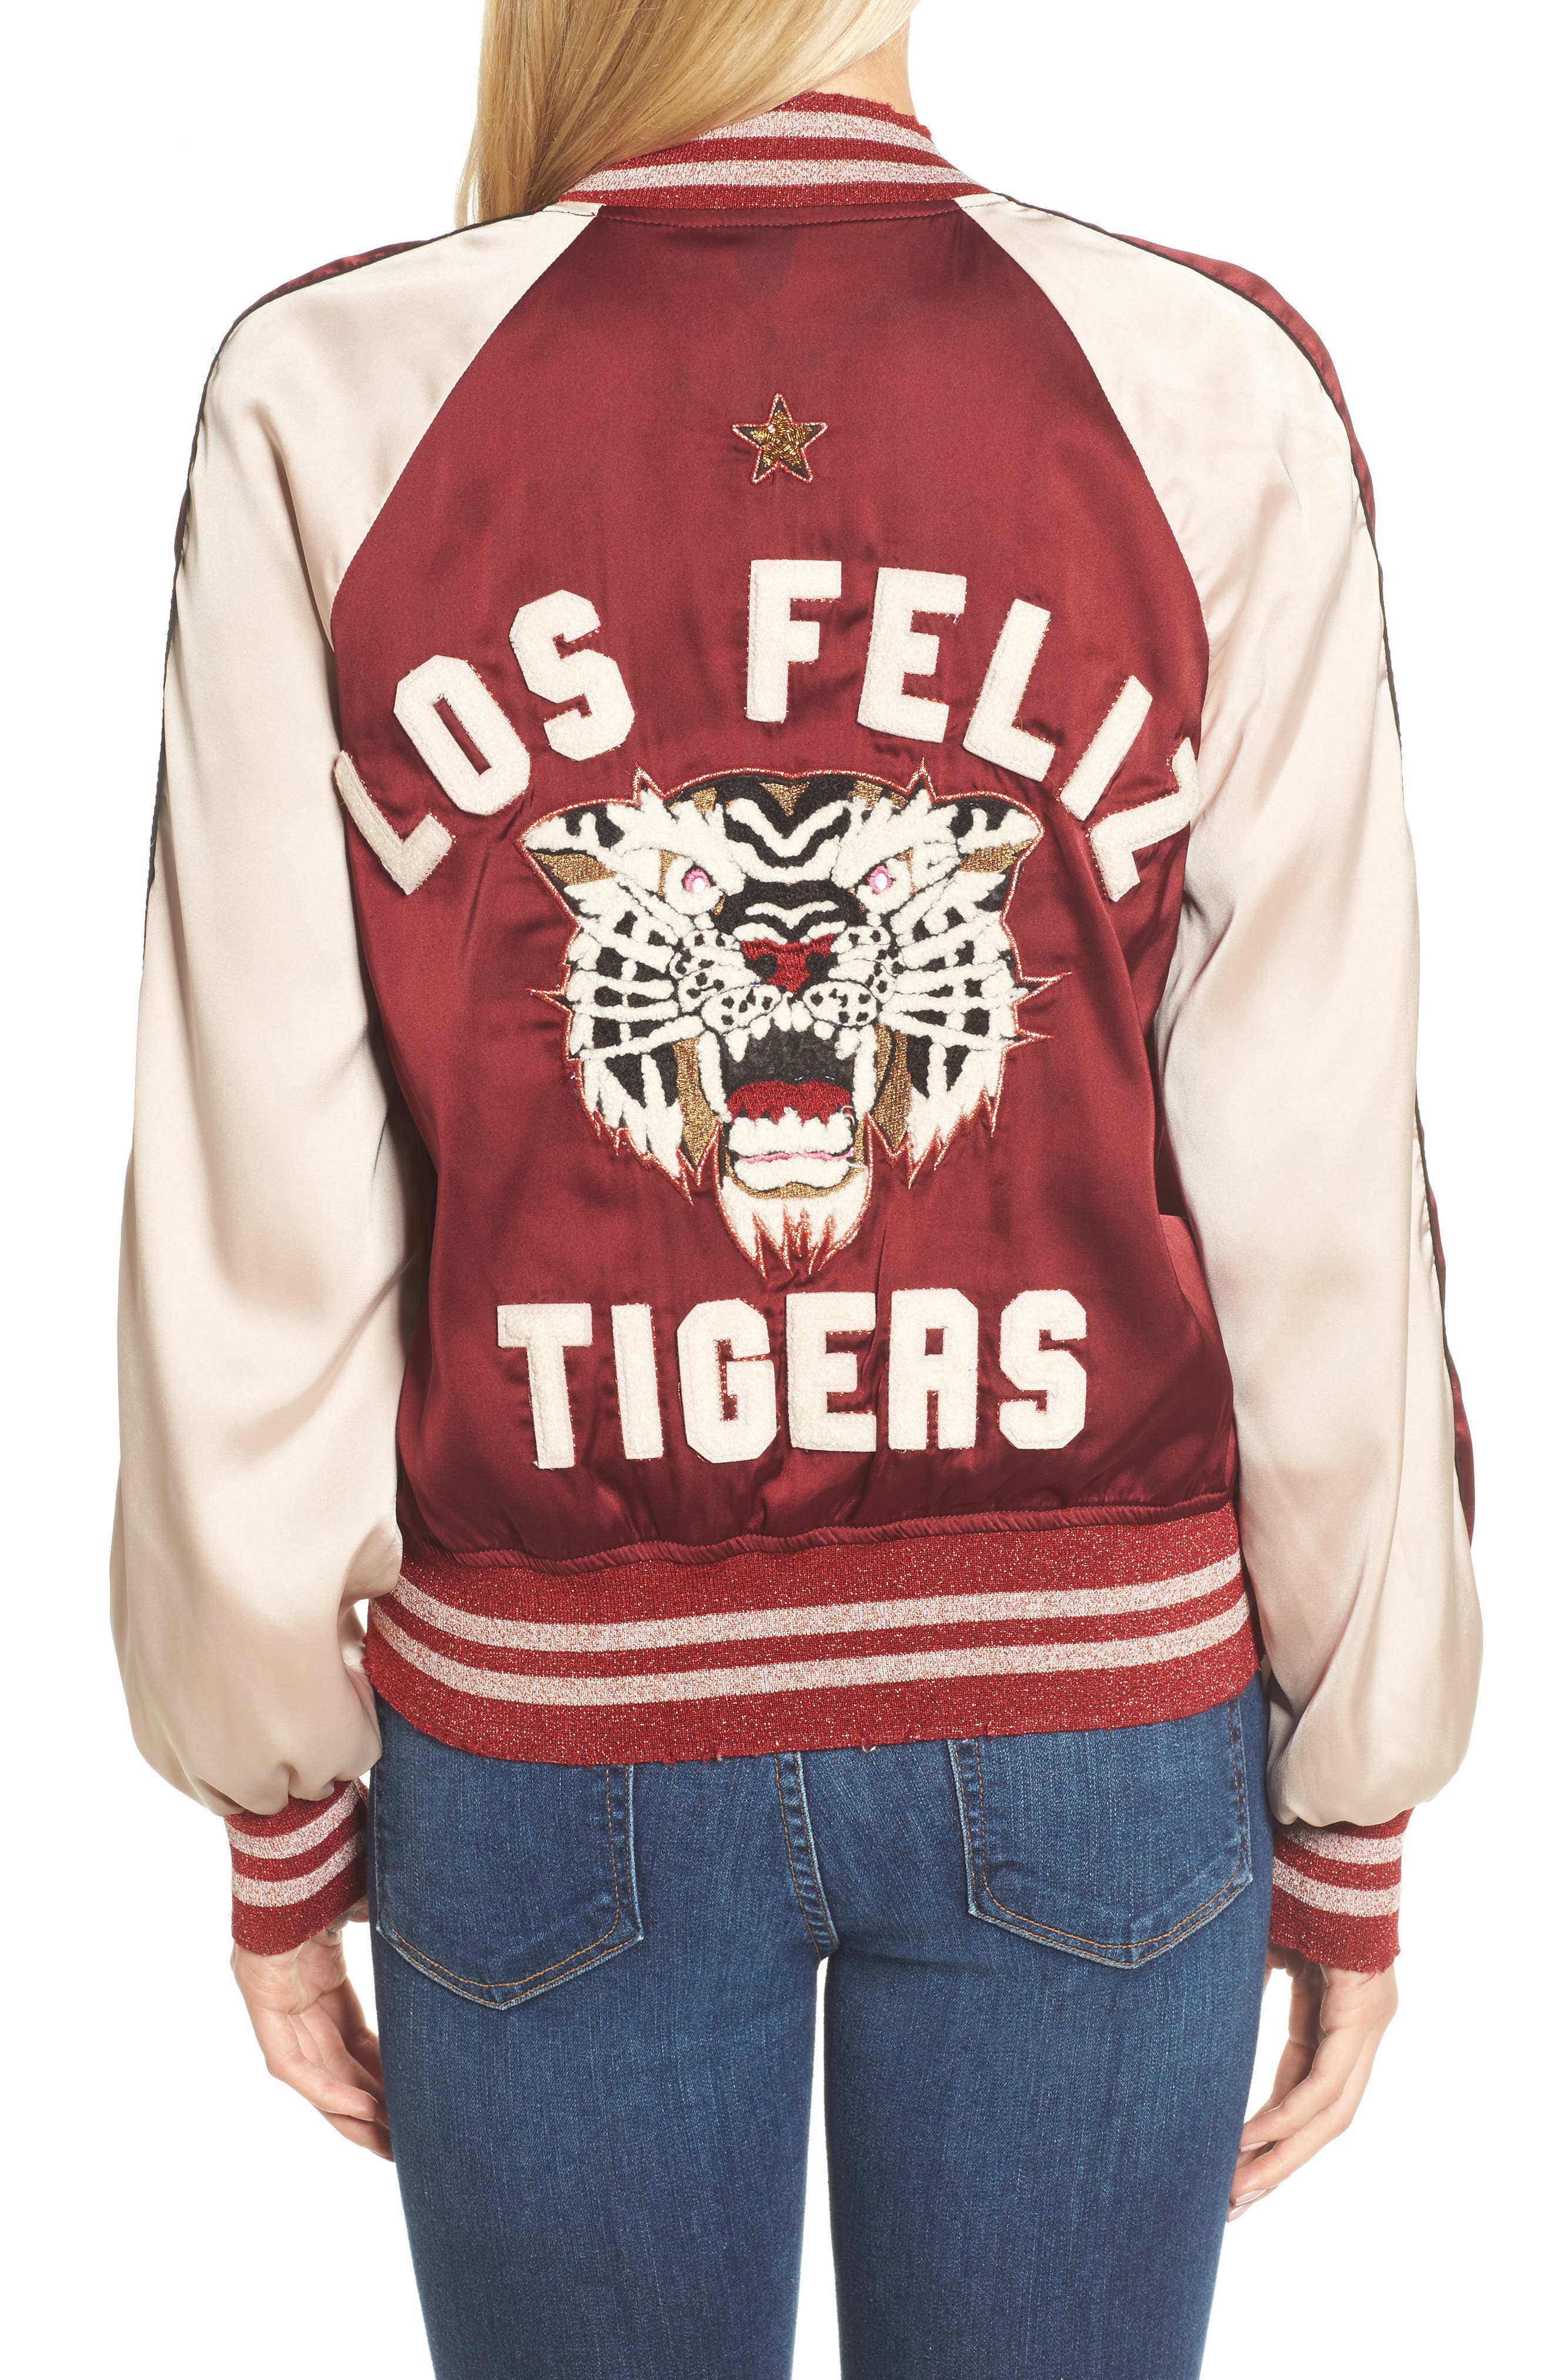 Los Feliz Tigers Bomber Jacket,                             Alternate thumbnail 2, color,                             Maroon